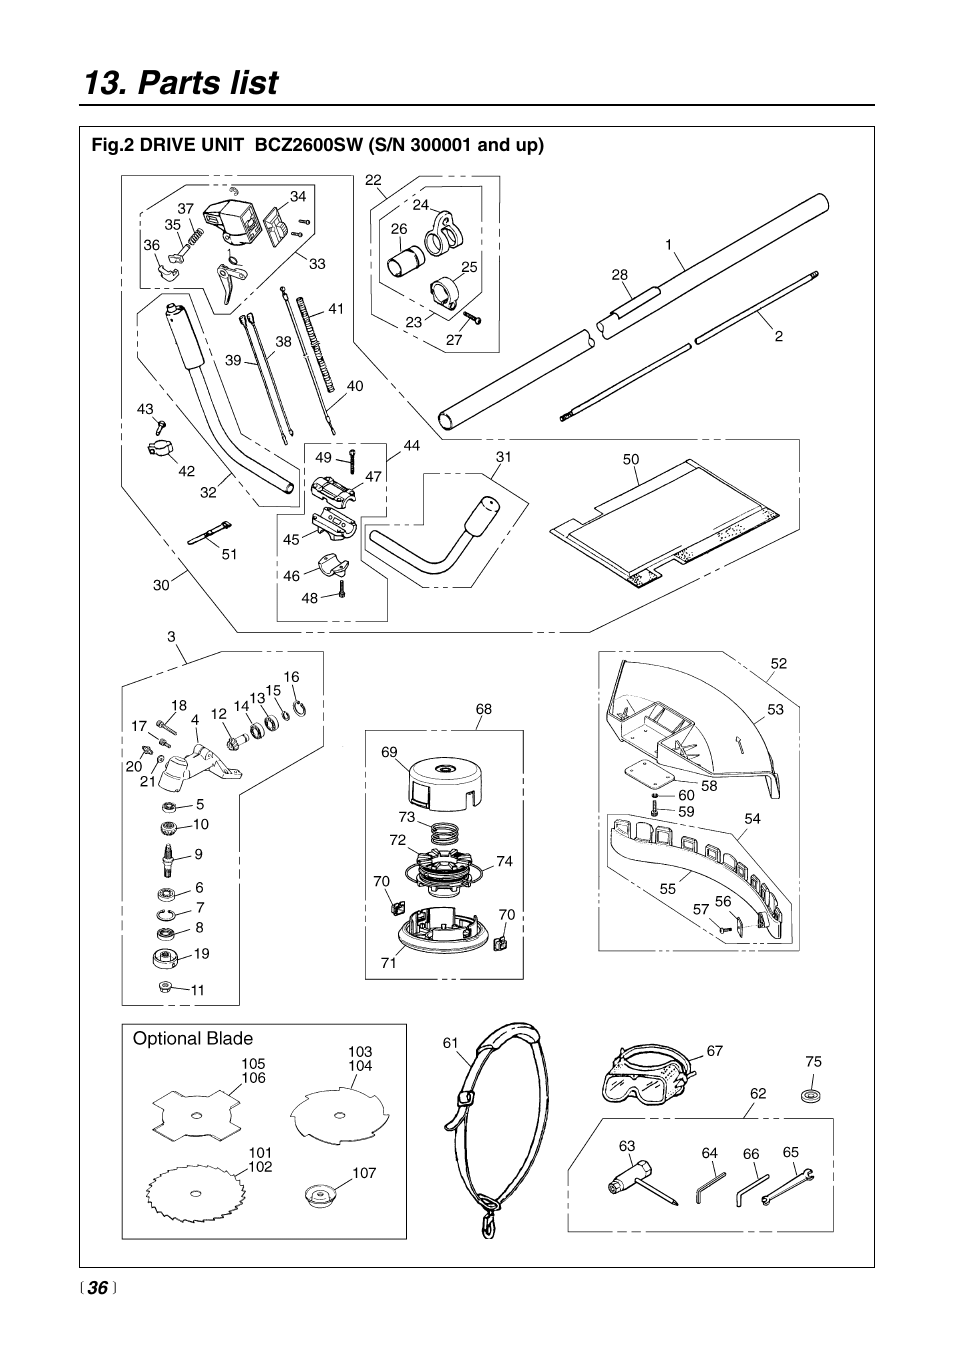 redmax bcz2600s page36 parts list redmax bcz2600s user manual page 36 44